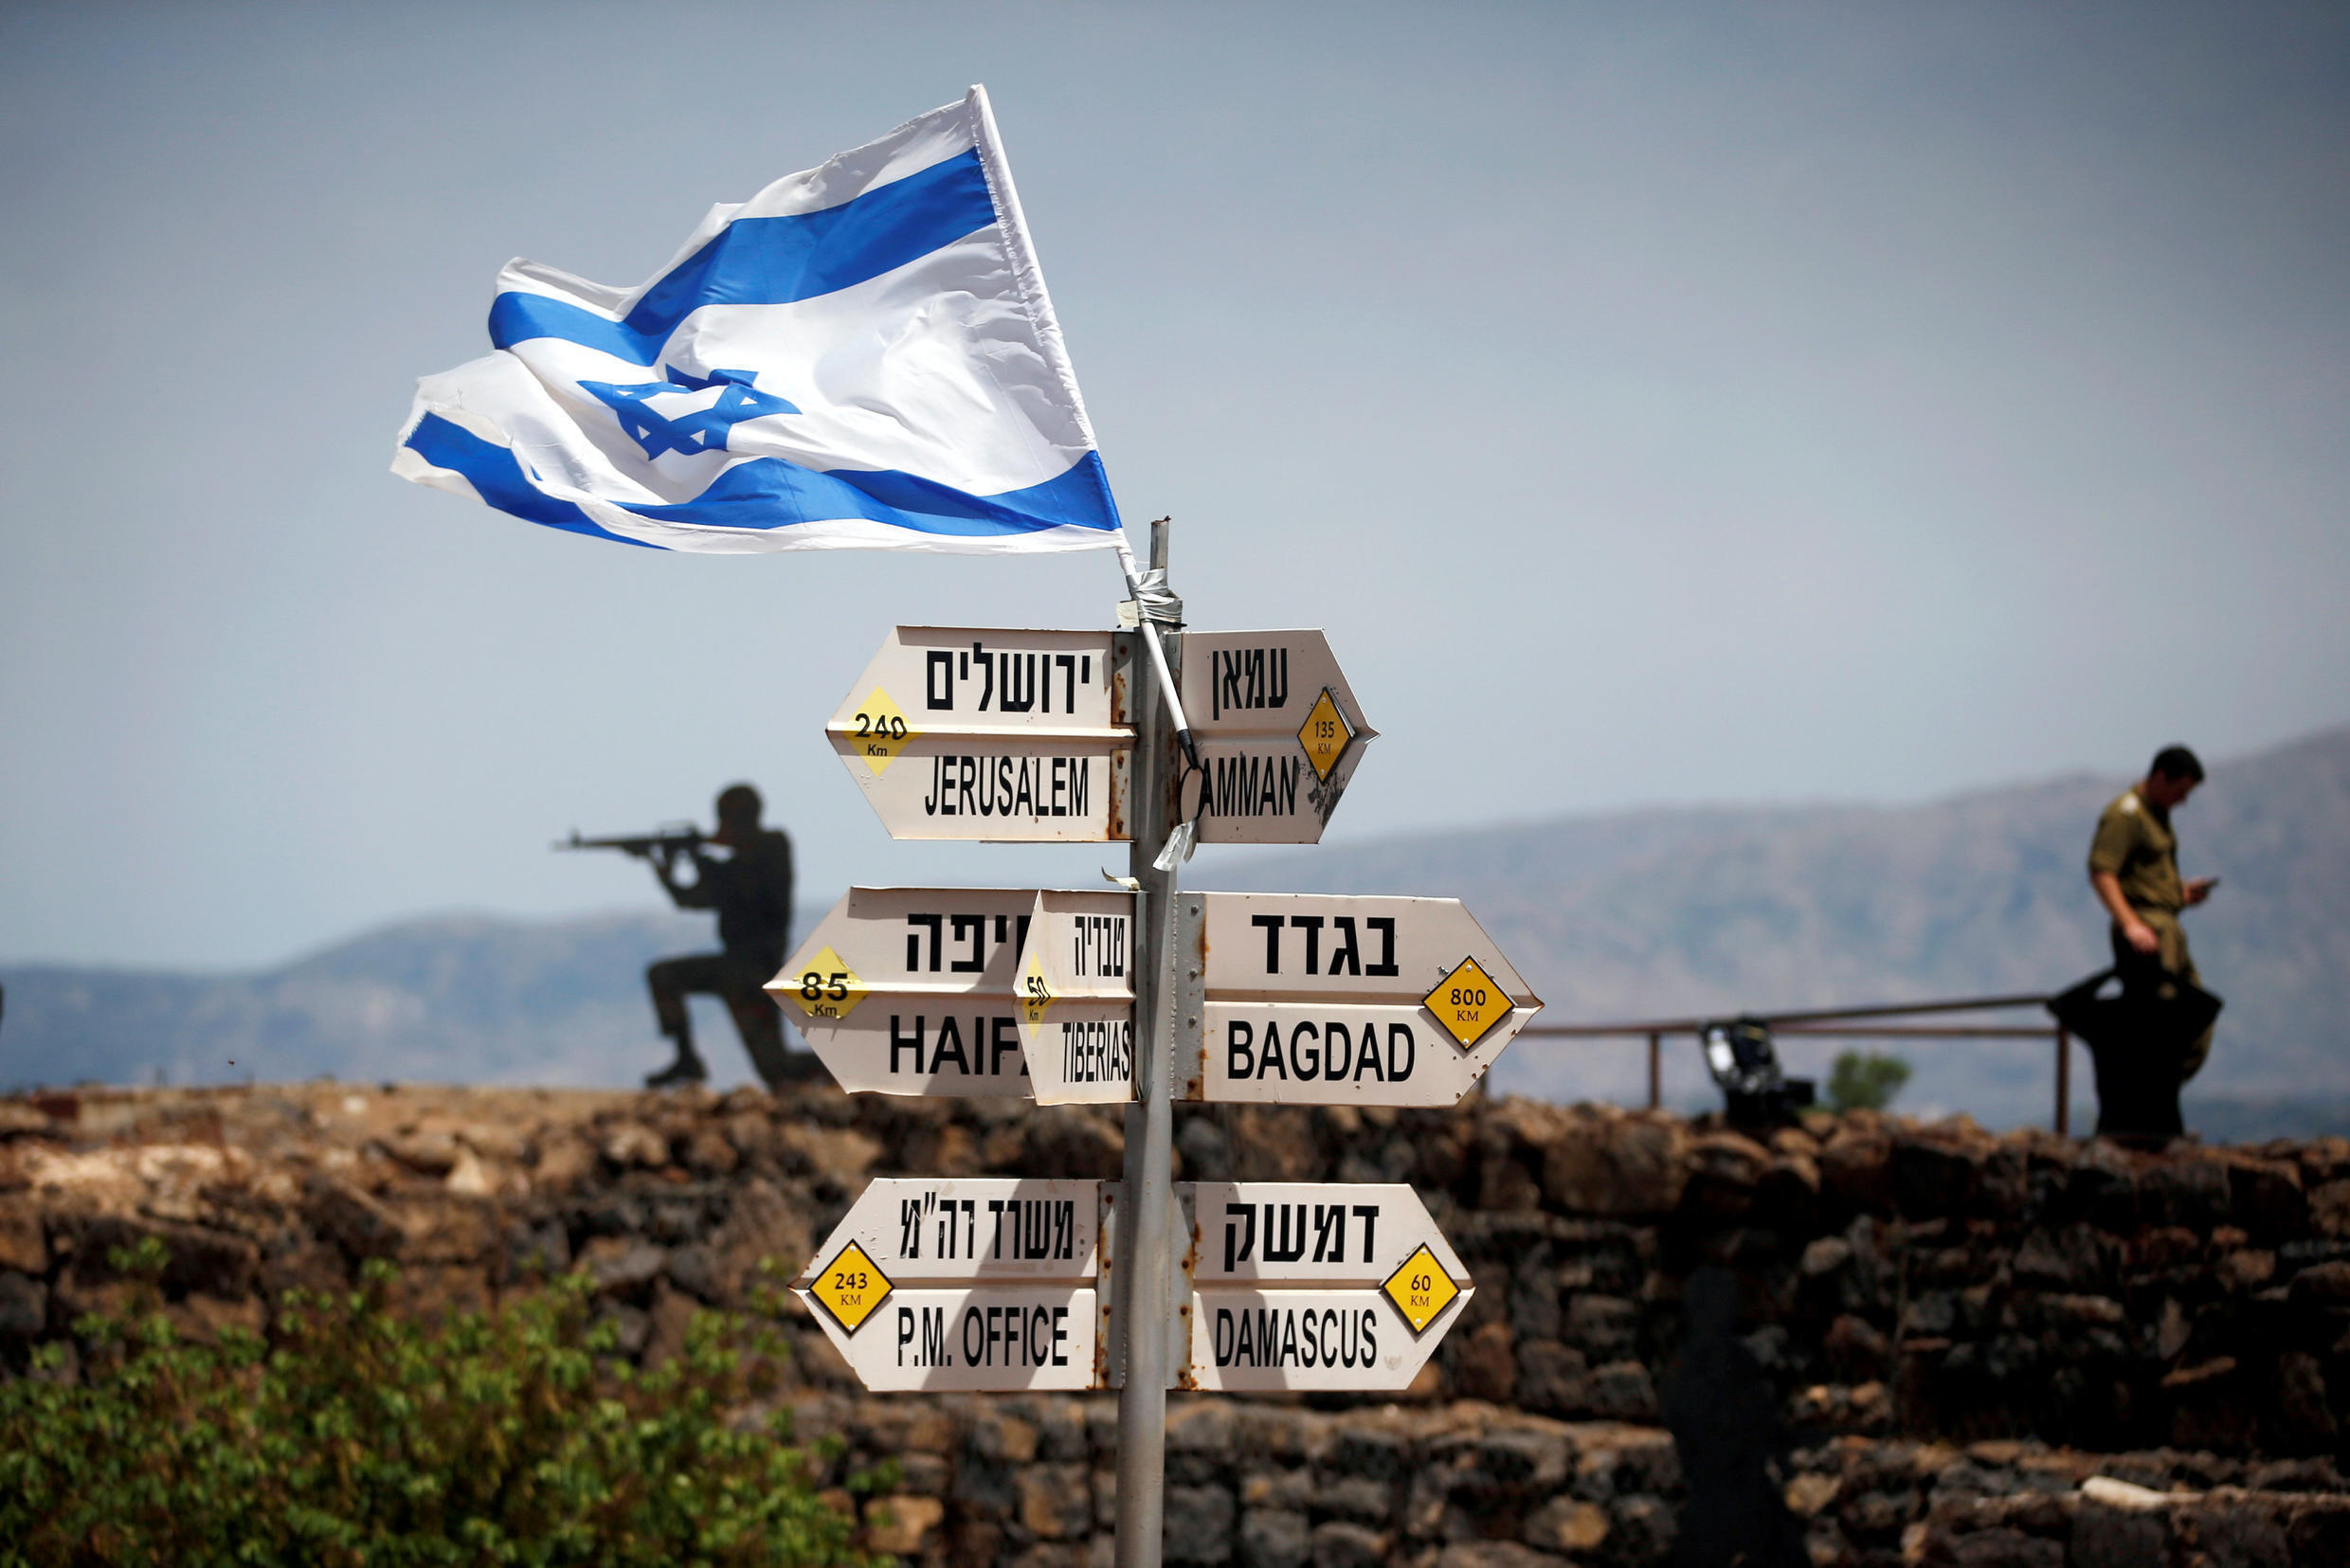 An Israeli soldier stands near a signpost on Mount Bental, an observation post in the Israeli-occupied Golan Heights overlooking Syria, 10 May 2018.